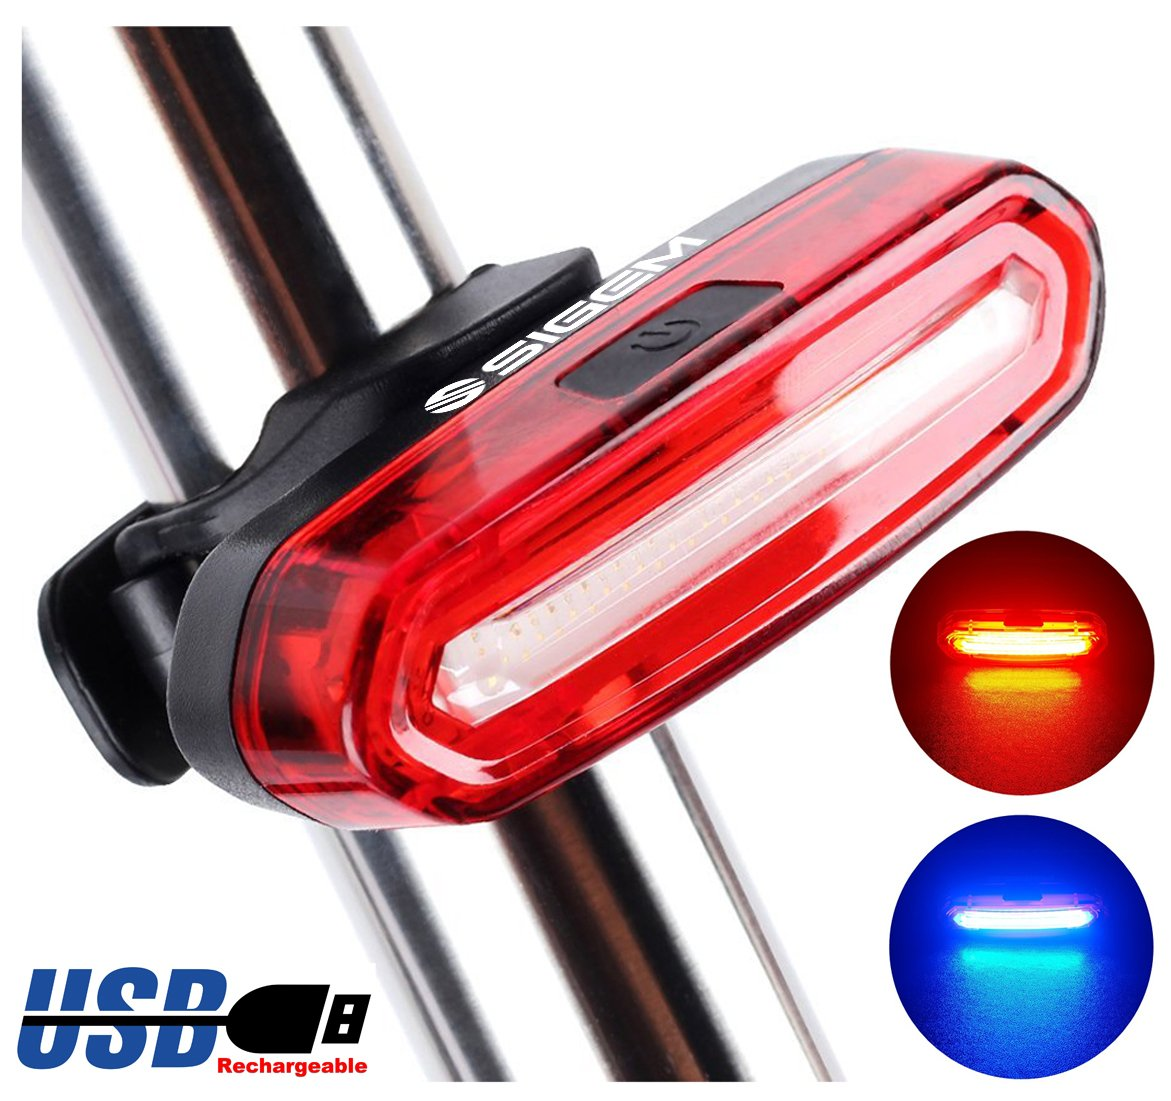 SIGEM BIKE TAIL LIGHT, HEADLIGHT, Ultra Bright & USB Rechargeable, Bicycle Flashing Rear taillight, LED Safety Warning Strobe Head Light, also for Helmet and Backpack 120 Lumens (Red-Blue)